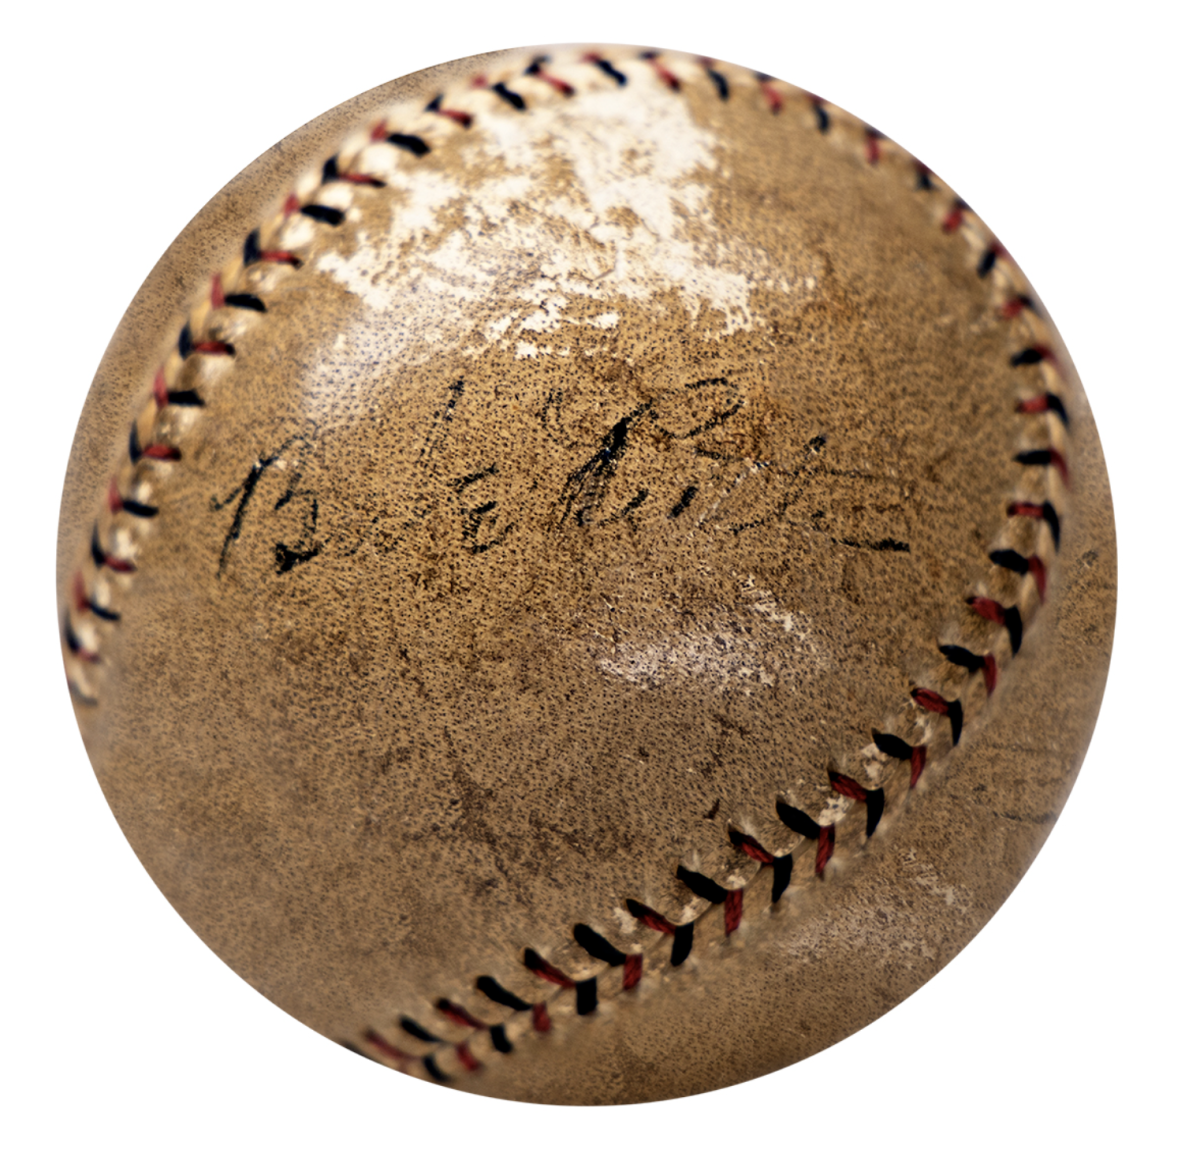 Baseball signed by Babe Ruth, Lou Gehrig and Christy Mathewson up for auction at Gotta Have Rock and Roll.